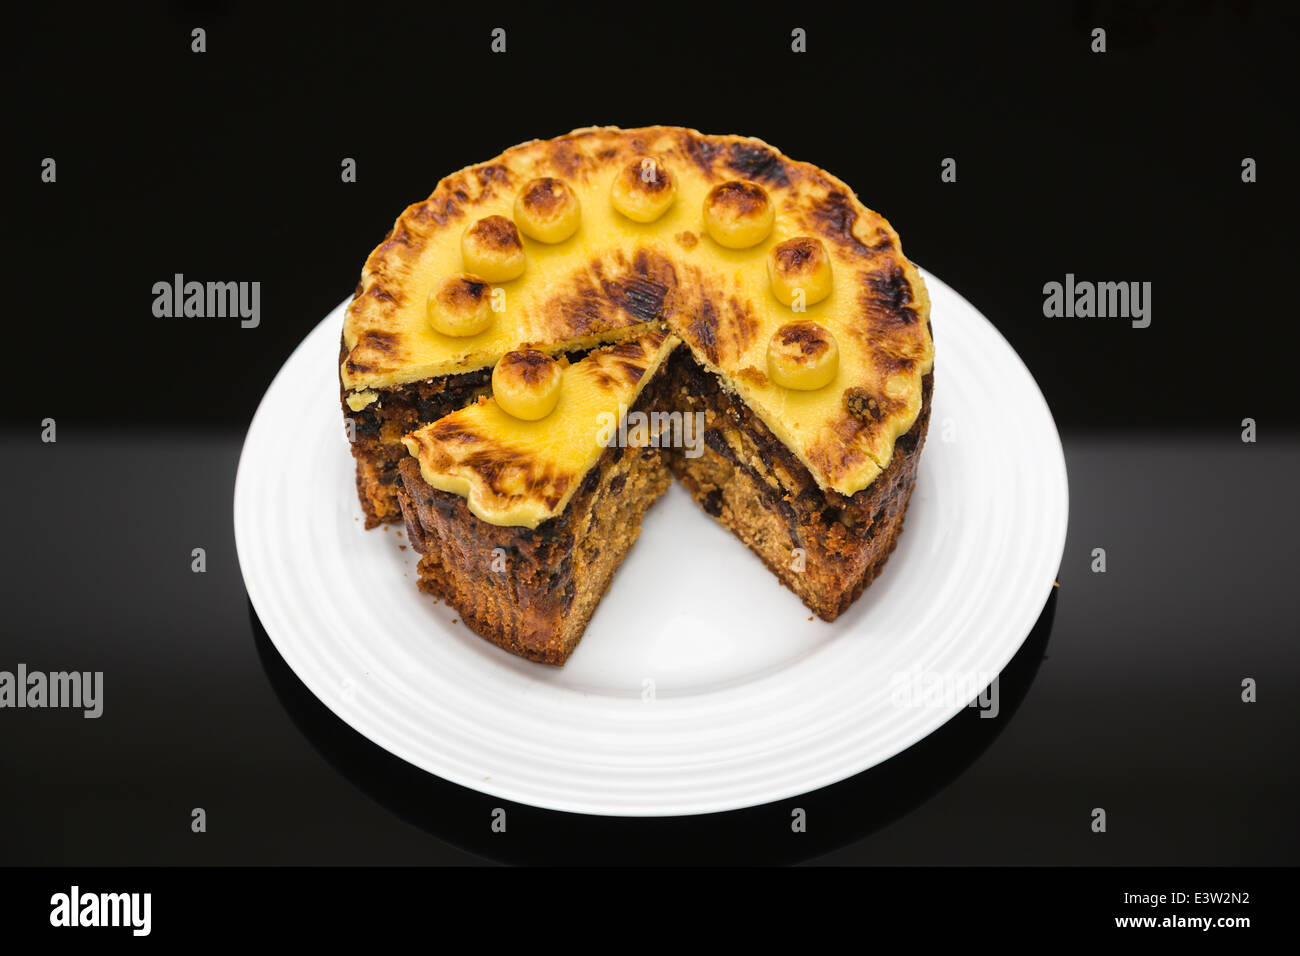 Traditional home baked round Easter simnel cake, topped with marzipan, sliced, on a circular white plate with black Stock Photo